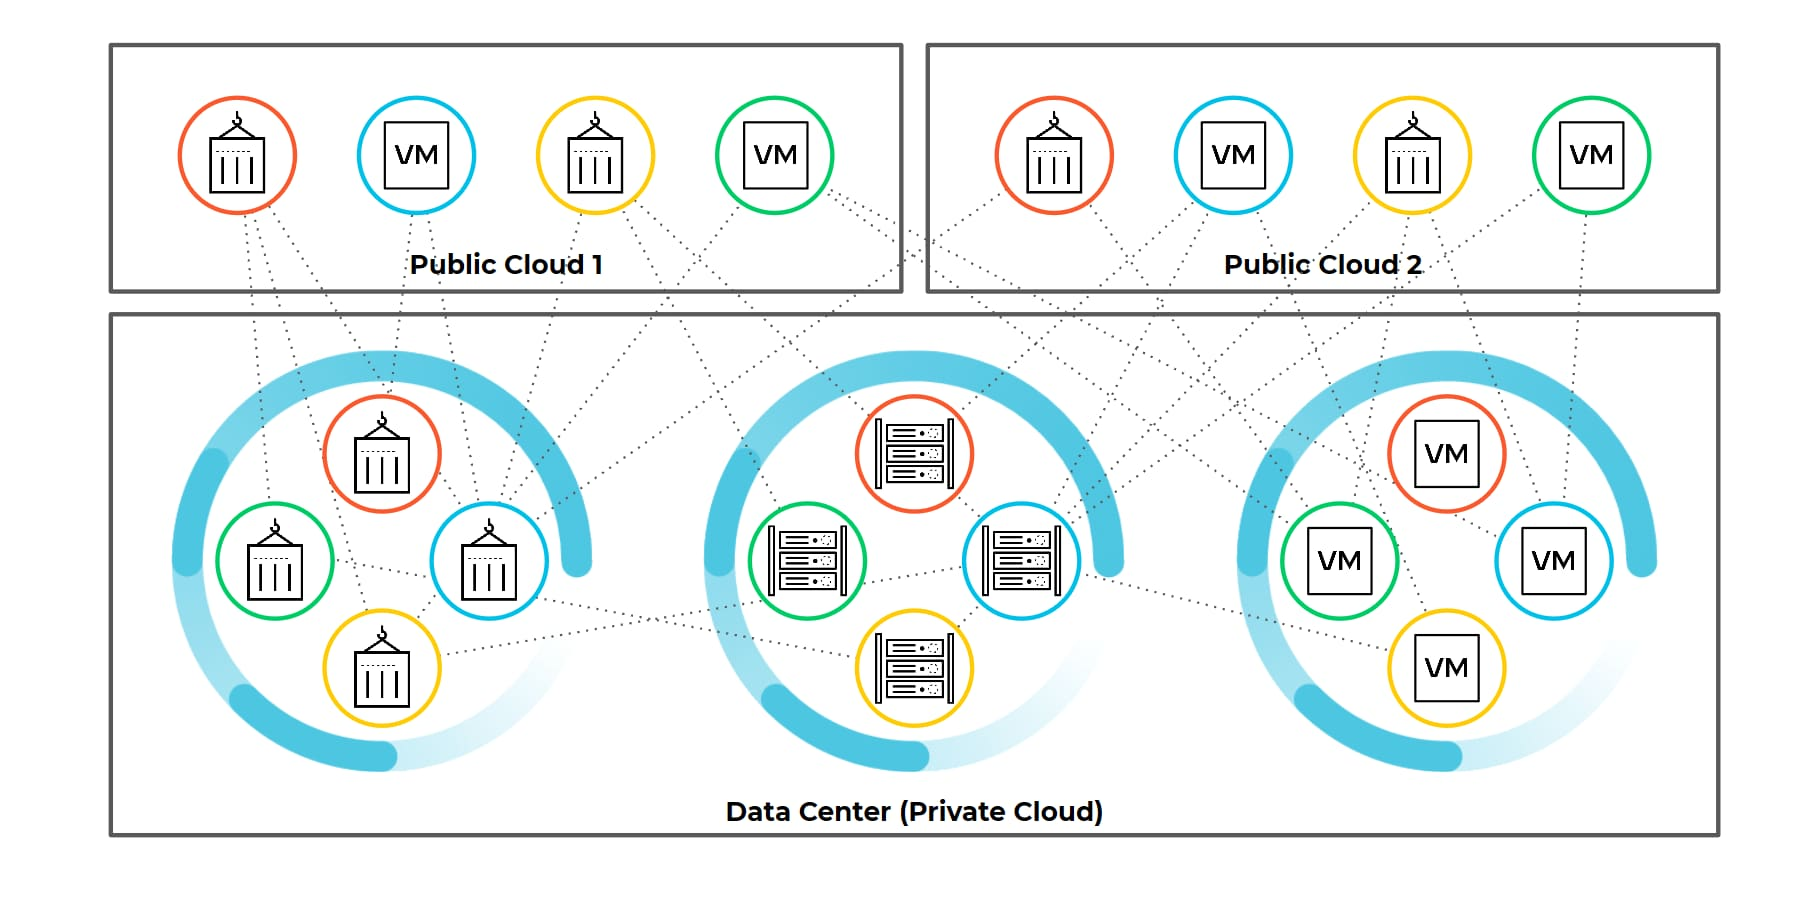 The diagram shows the complex relationships between public clouds, private clouds, containers, hardware and virtual machines, illustrating the interconnectivity that makes hybrid cloud security both important and challenging.